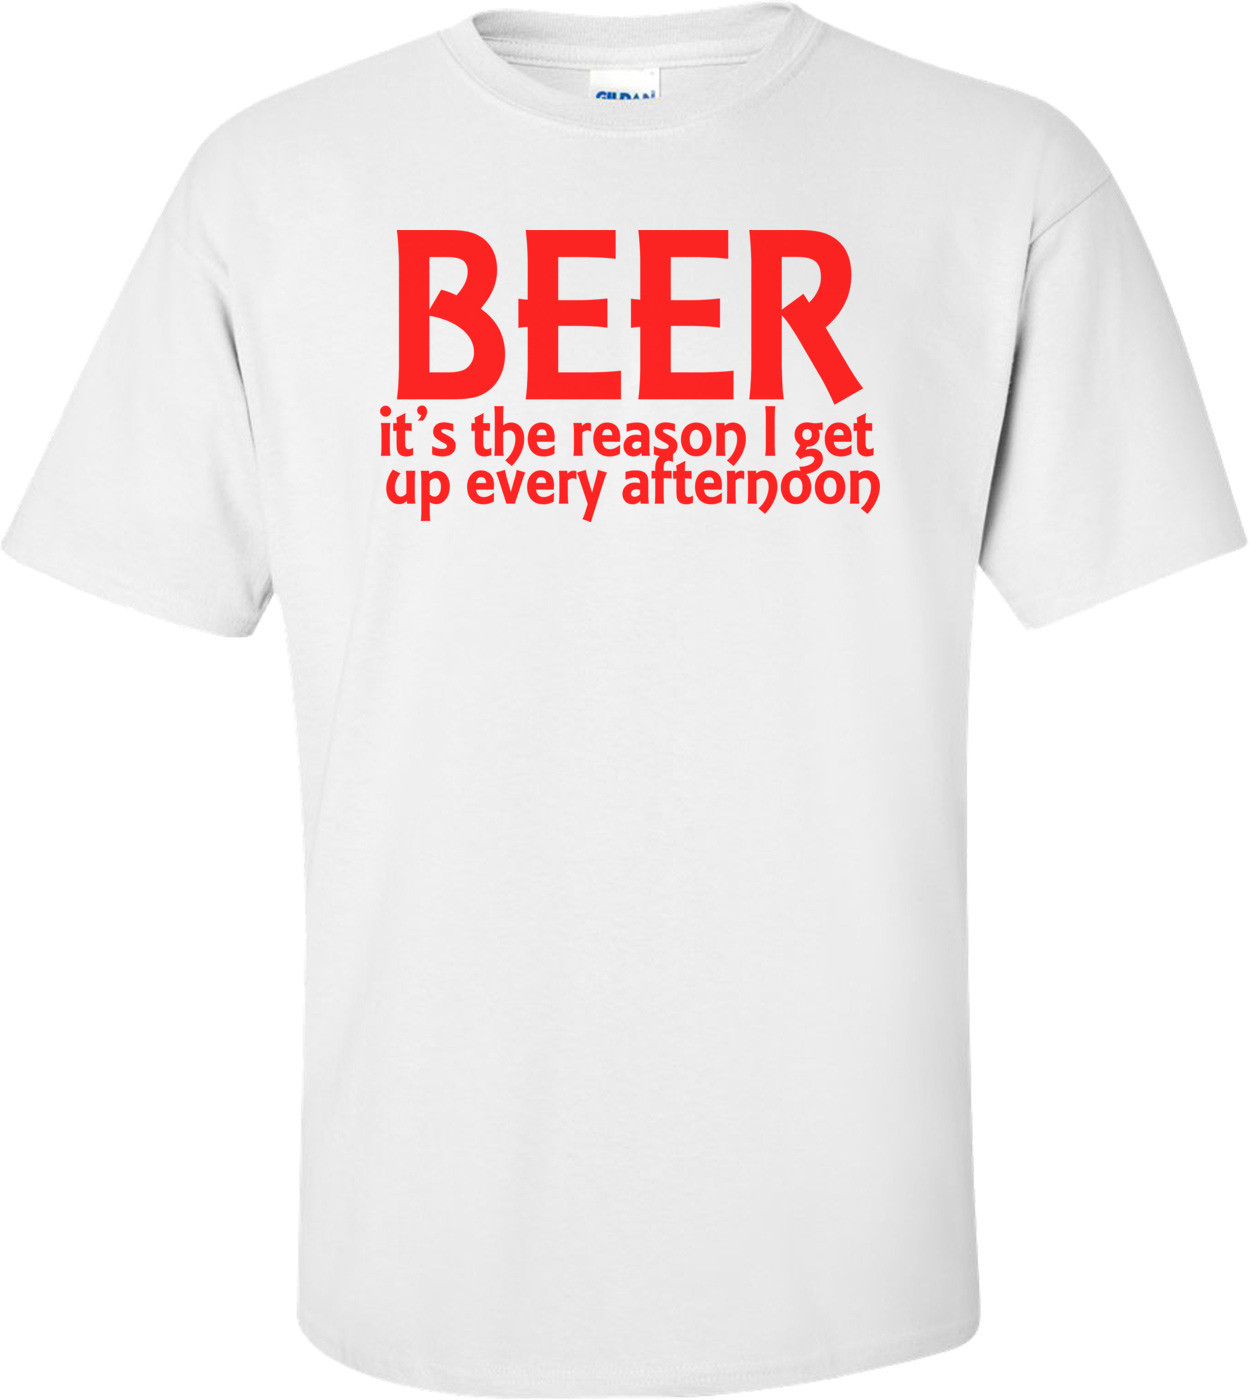 Beer It's The Reason I Get Up Every Afternoon Funny Drinking Shirt